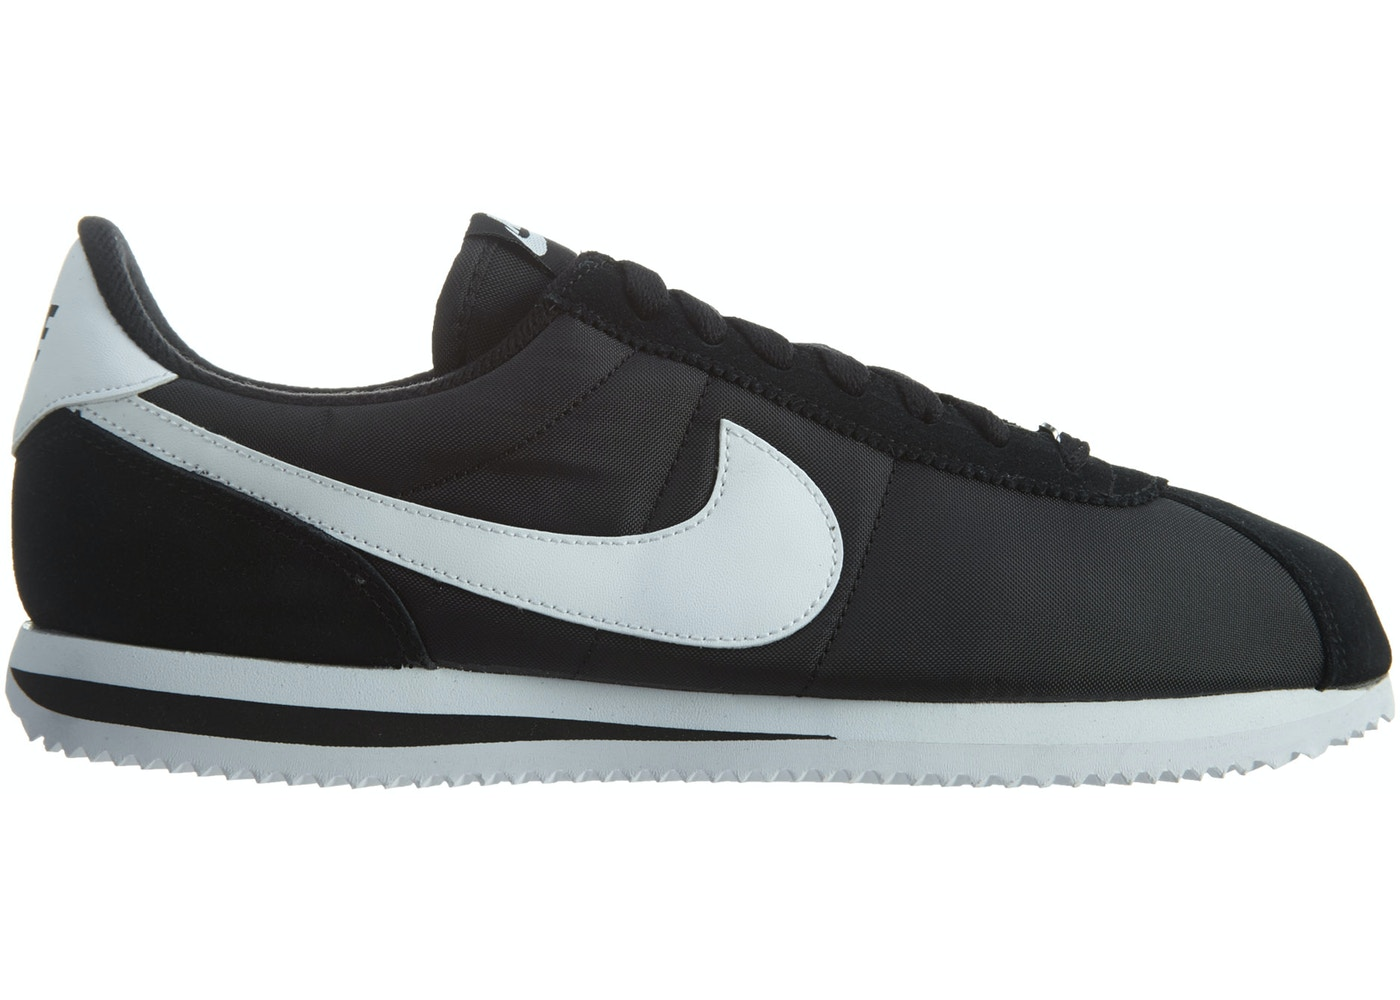 new product a0778 18100 Nike Cortez Basic Nylon Black White-Metallic Silver